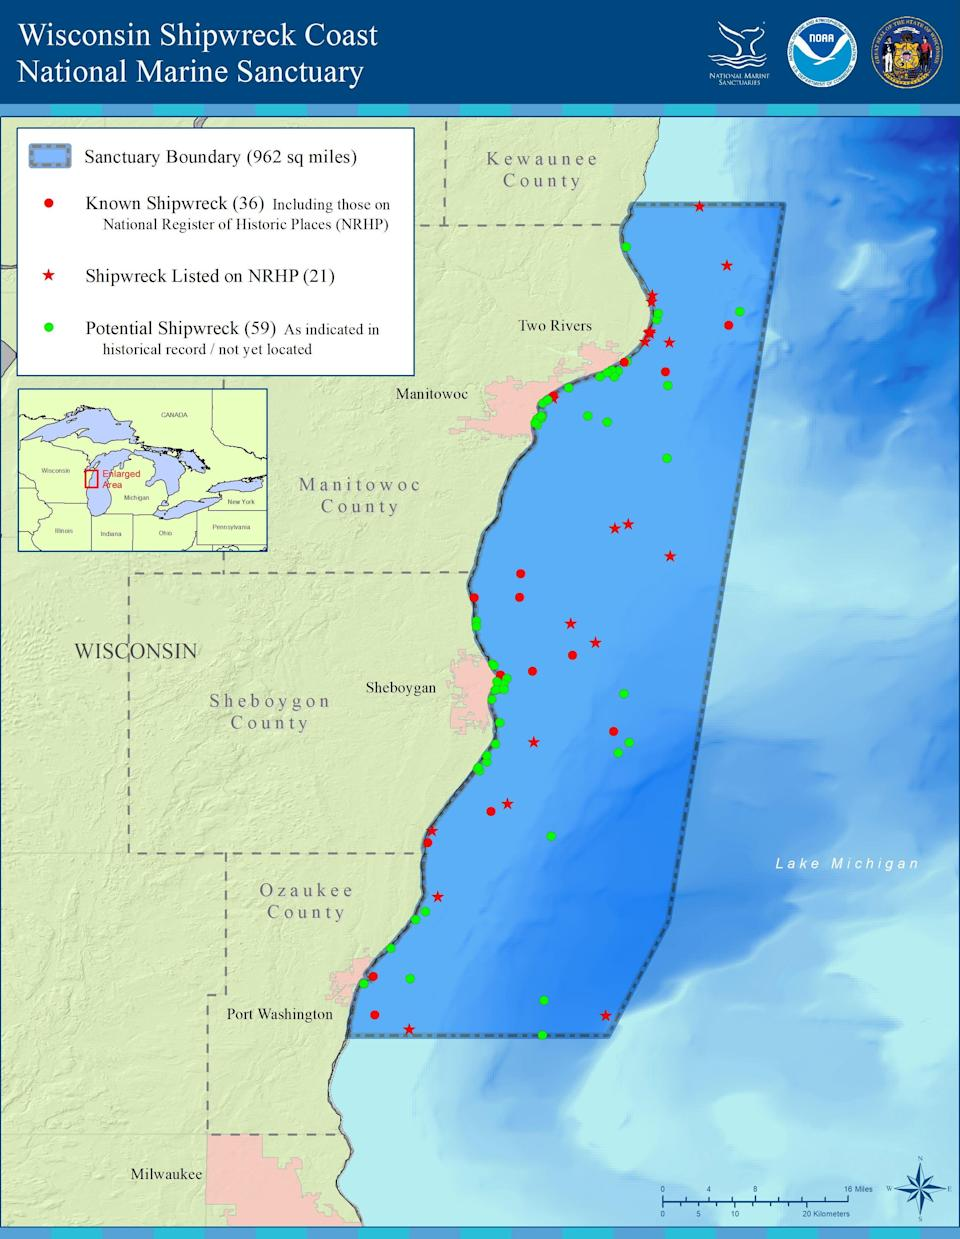 A map of the Wisconsin Shipwreck Coast National Marine Sanctuary.